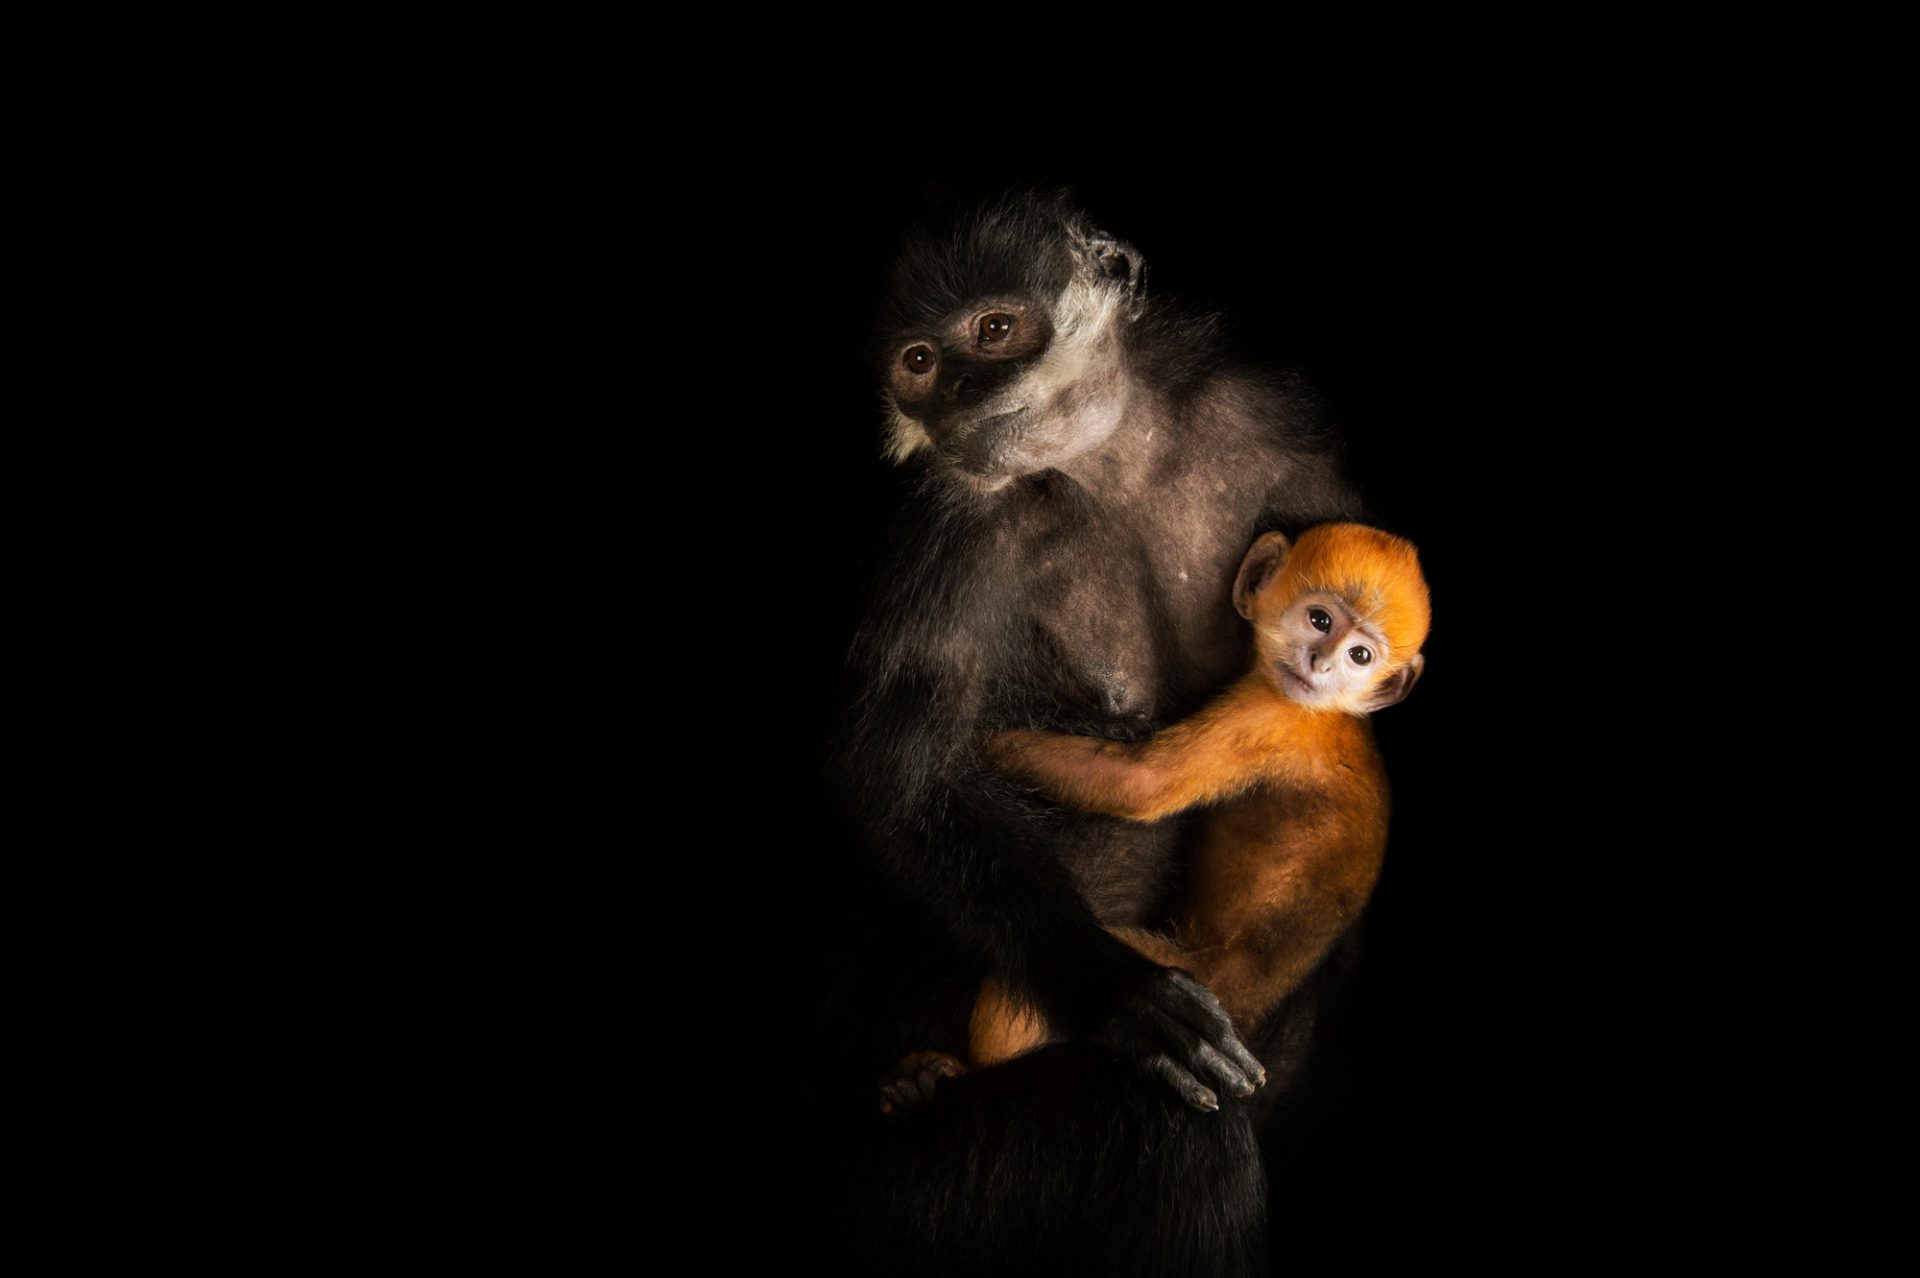 Picture of endangered (IUCN) and federally endangered Francois' langurs (Trachypithecus francoisi) at Omaha Henry Doorly Zoo.